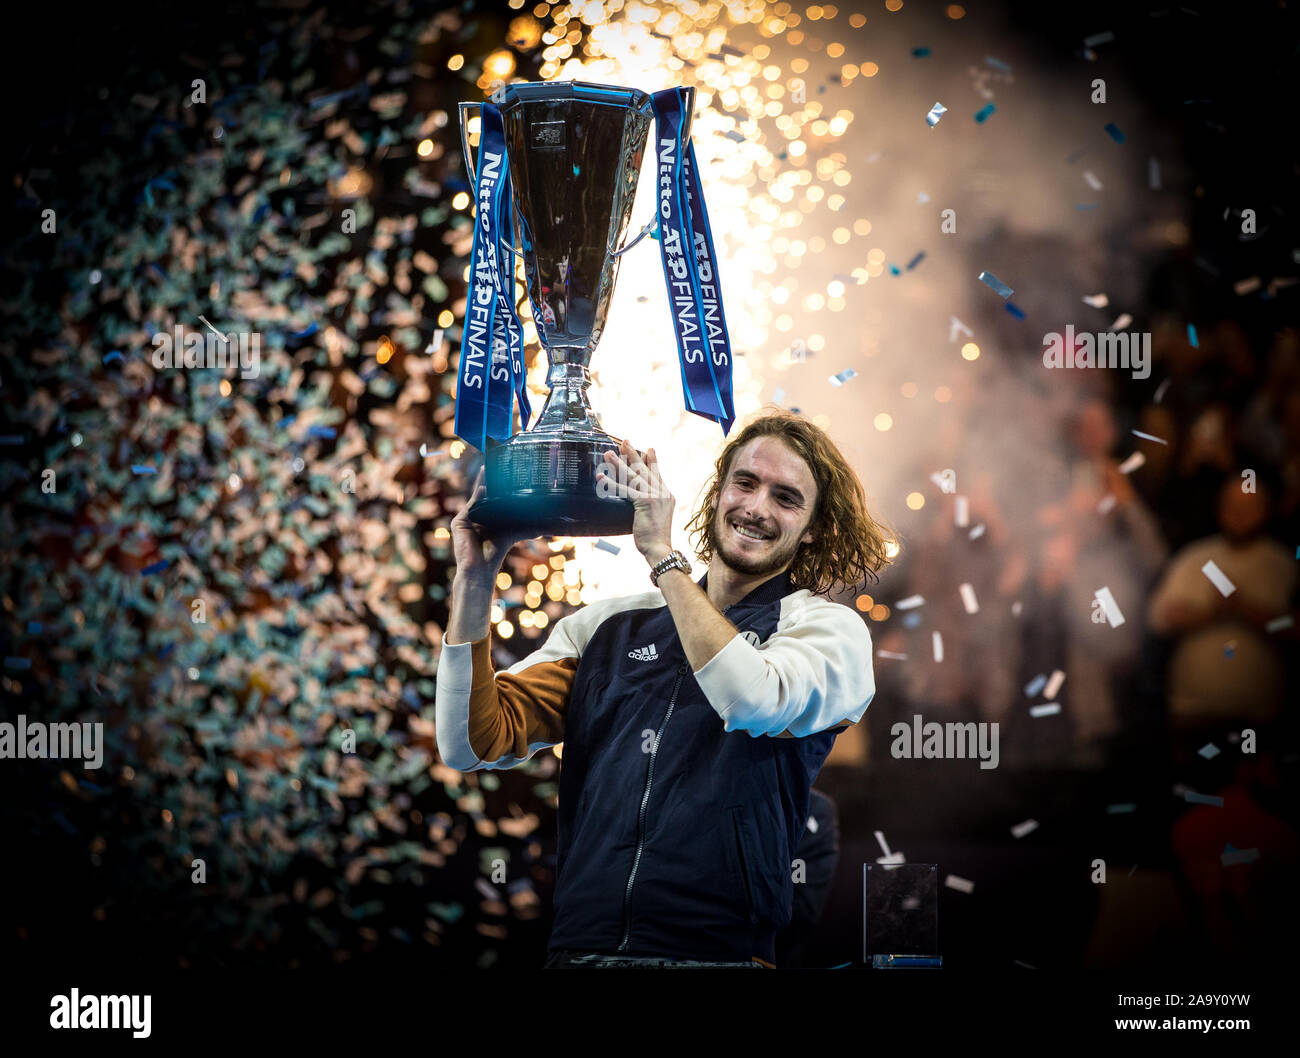 London, UK. 17th Nov, 2019. Stefanos TSITSIPAS (Greece) celebrates winning the FINAL during the Nitto ATP World Tour Finals London Day 8 (FINALS) at the O2, London, England on 17 November 2019. Photo by Andy Rowland. Credit: PRiME Media Images/Alamy Live News Stock Photo